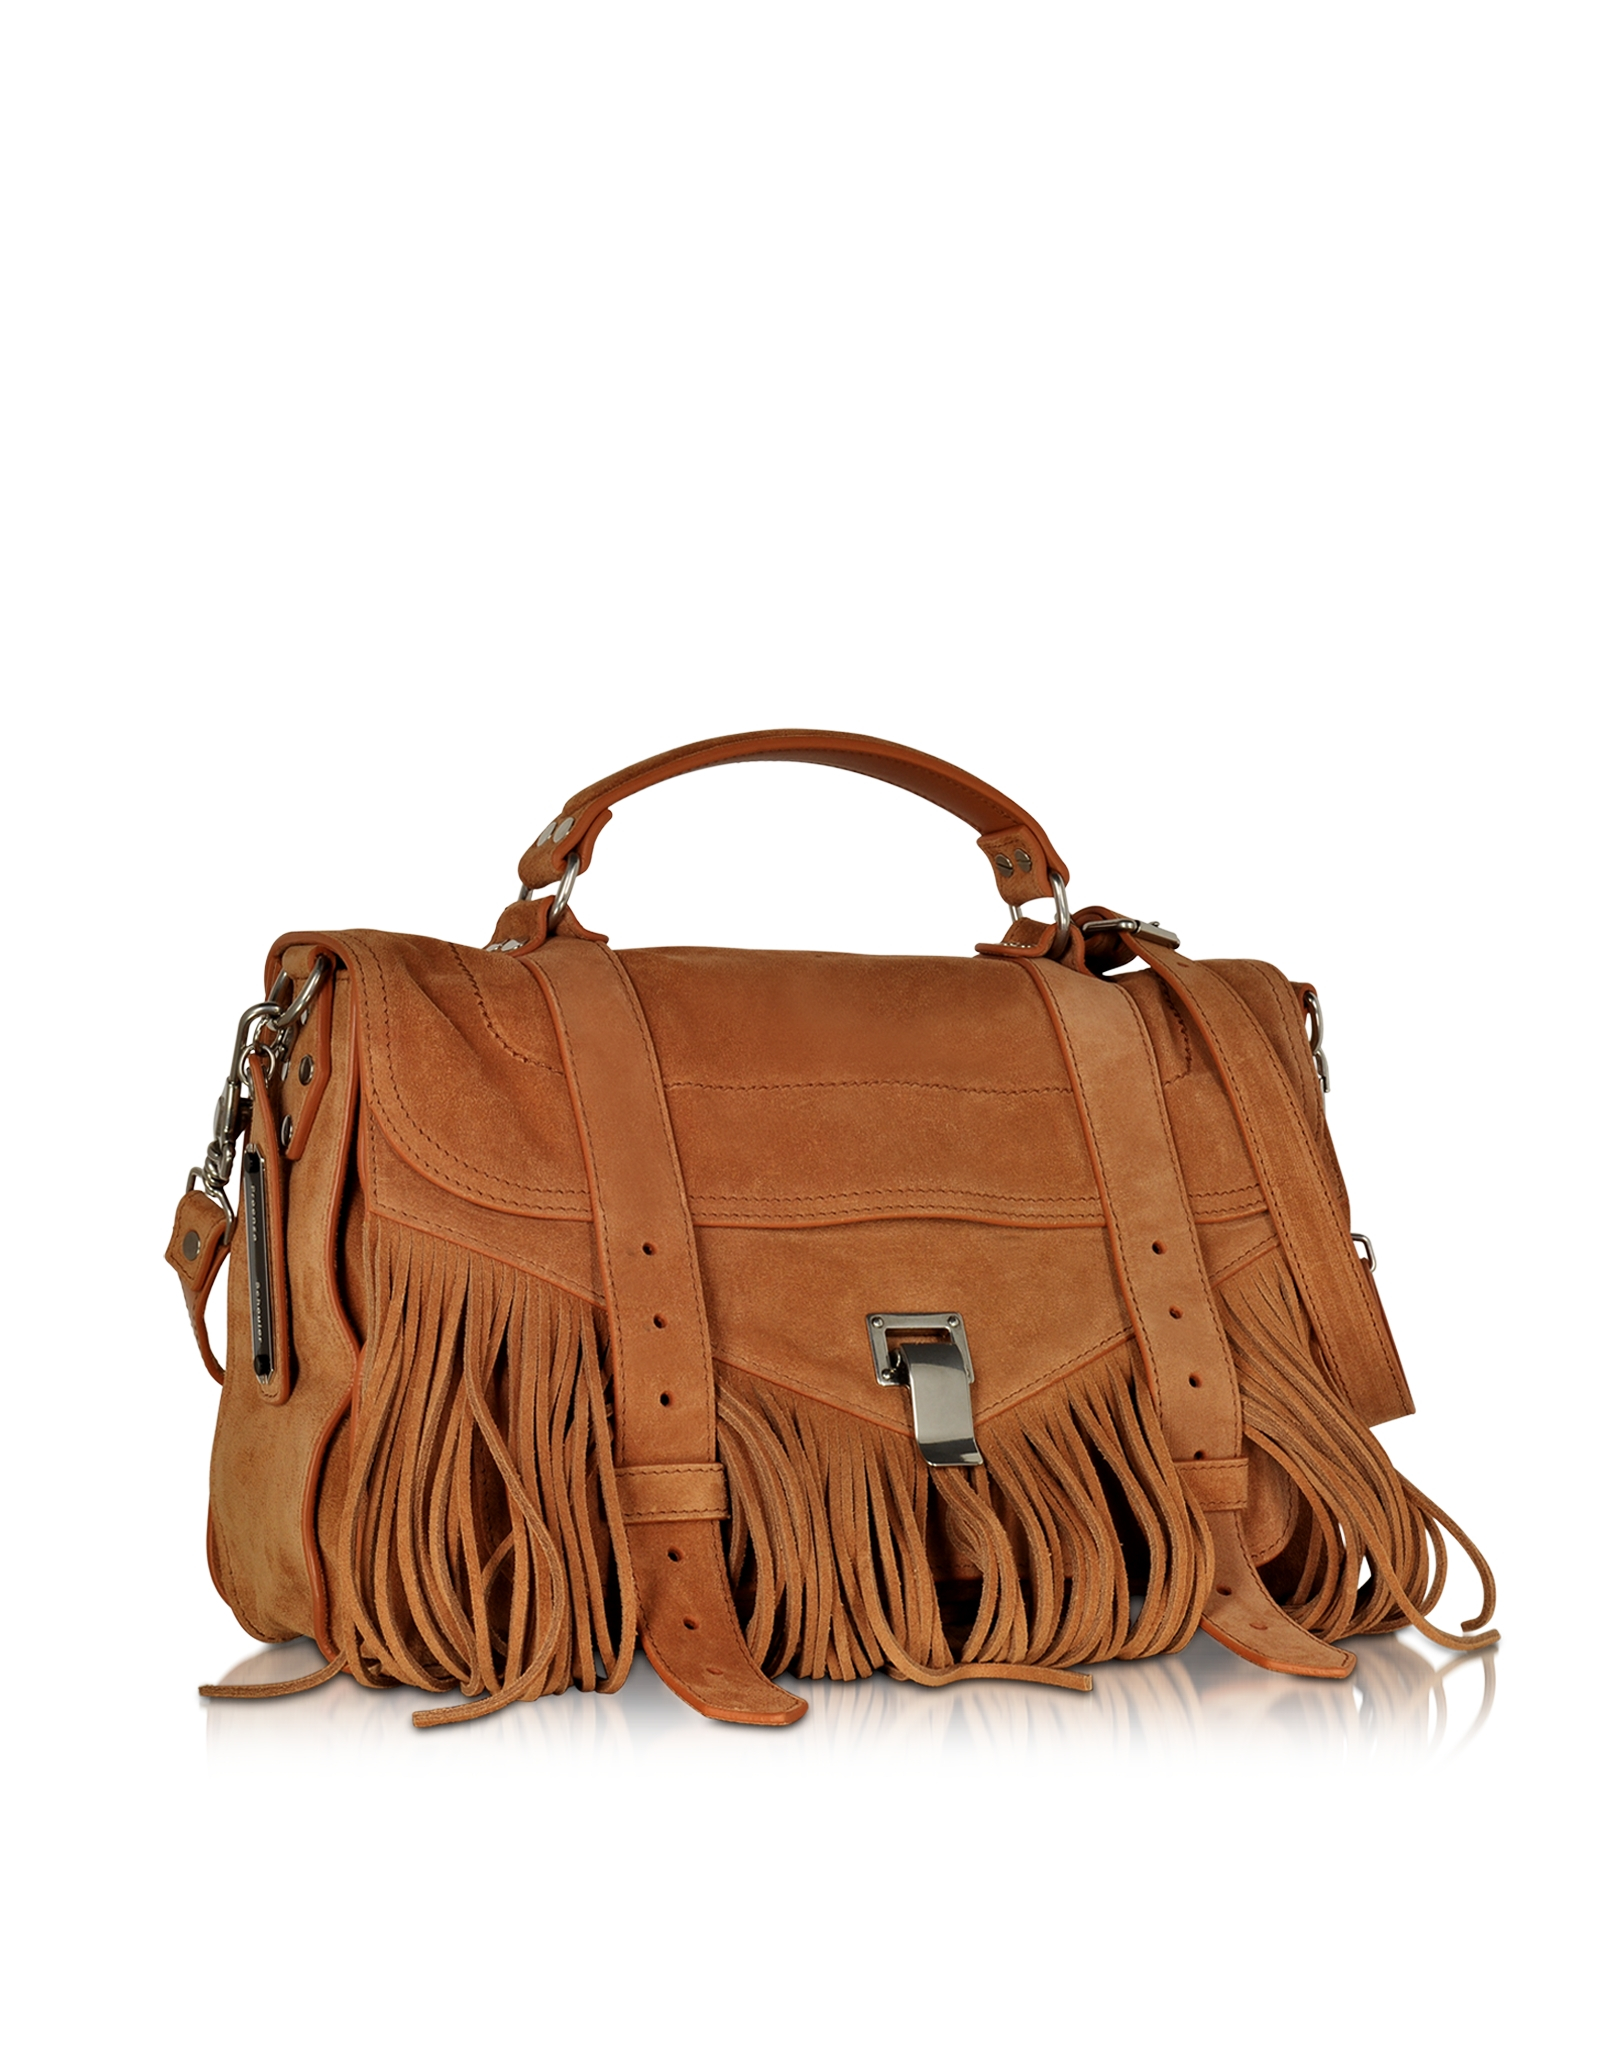 Proenza schouler Ps1 Fringe Medium Dune Suede Satchel Bag in ...